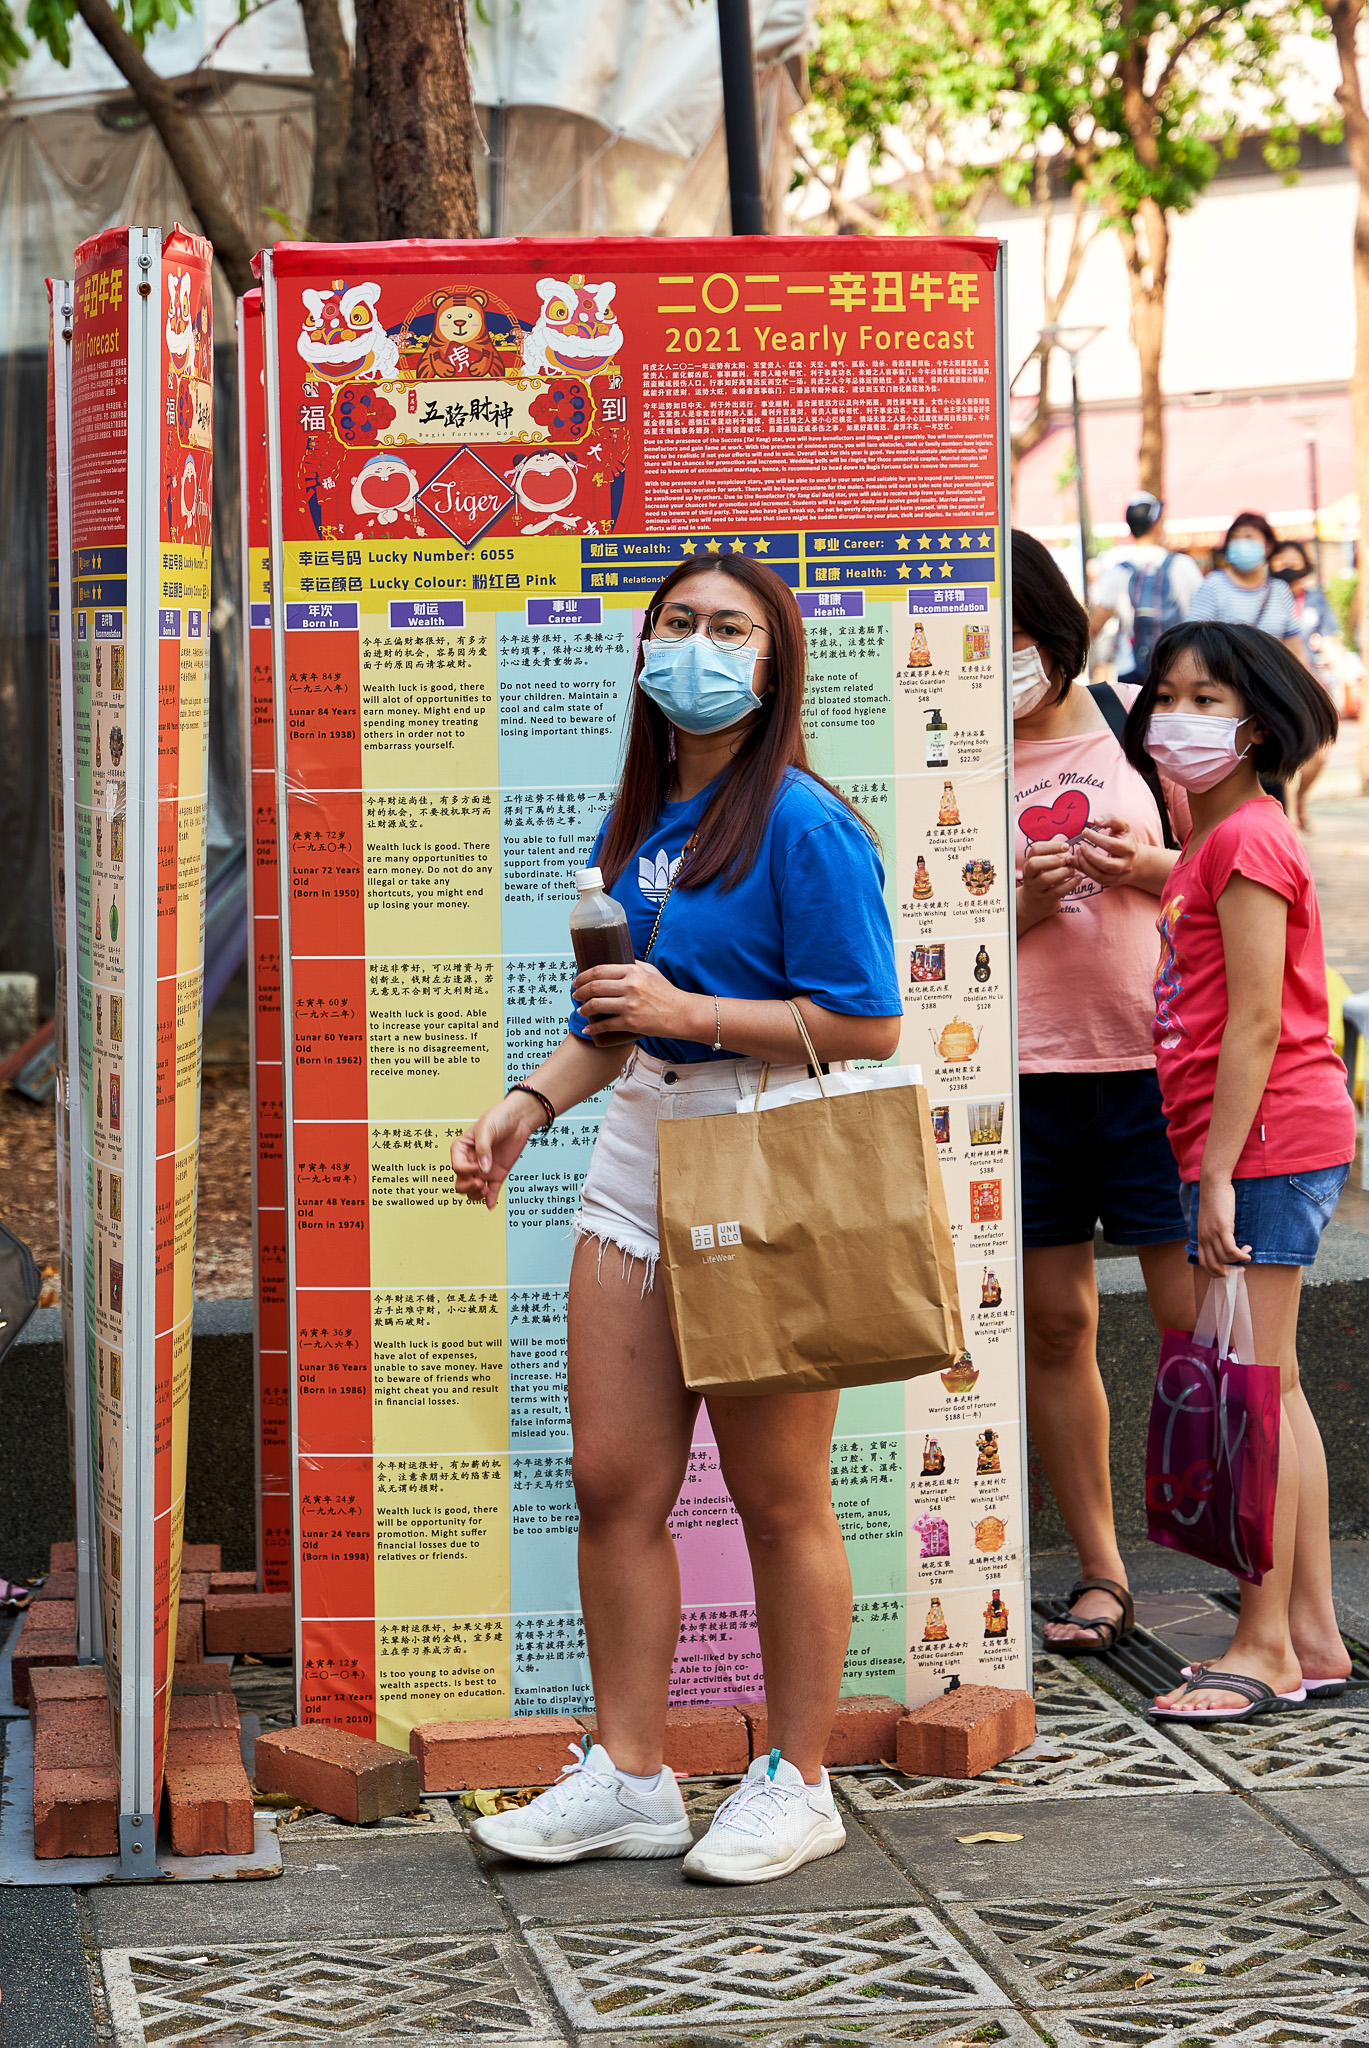 People checking out their yearly forecast for their respective zodiac for the Lunar New Year, Bugis, Singapore